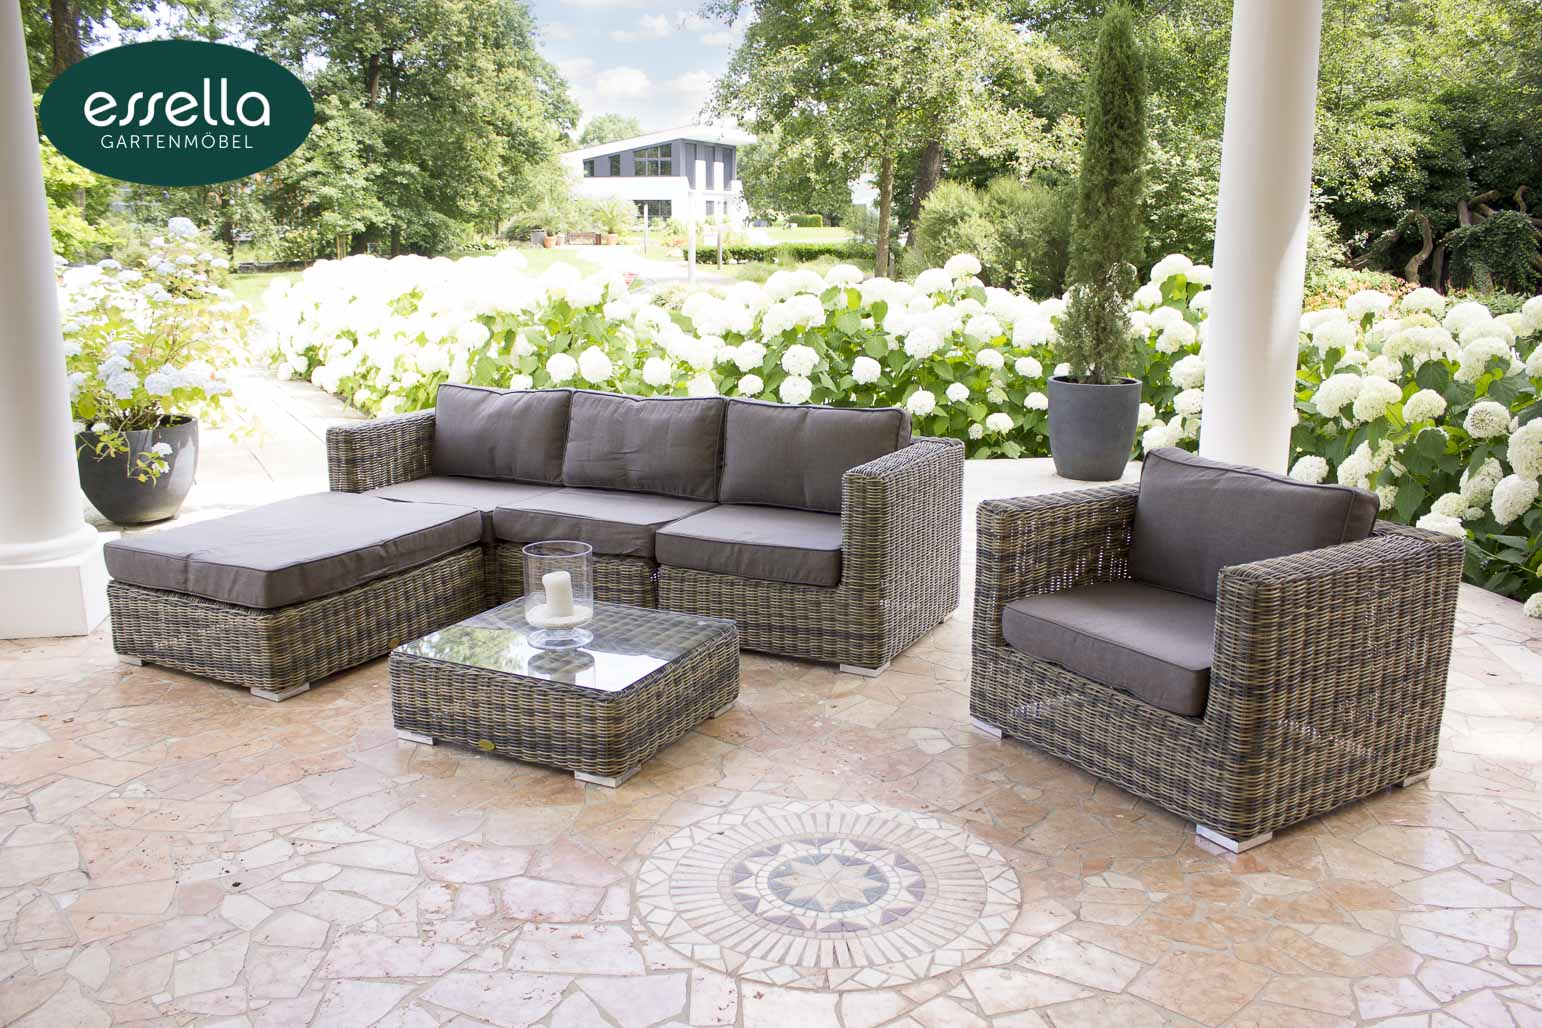 Essella Polyrattan Lounge Möbel Cannes Rundgeflecht